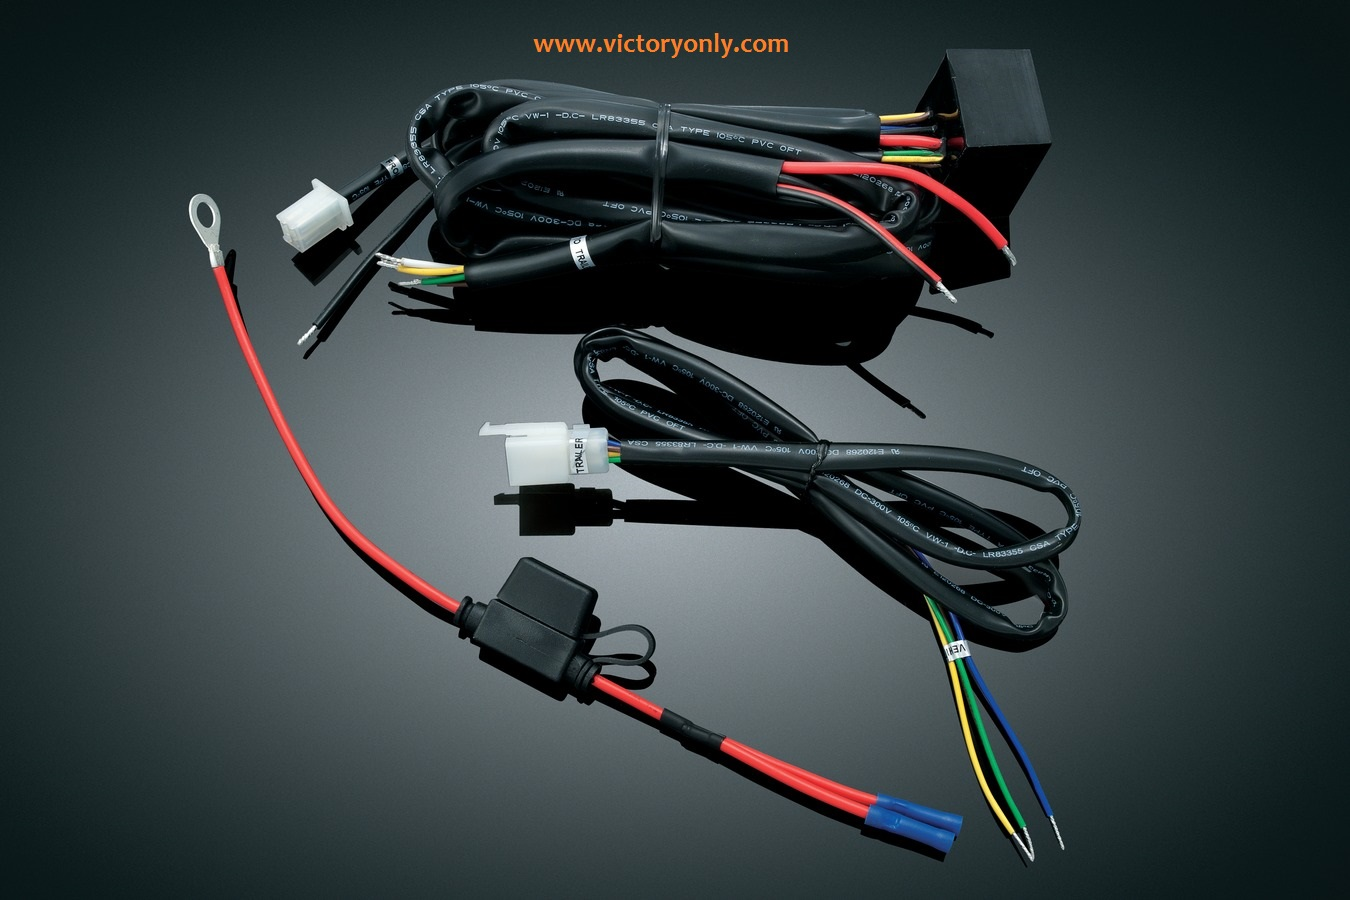 16997_kur_7671_tt_u_13_1350x900_RGB_72DPI trailer wiring harnesses for victory motorcycle Universal Wiring Harness Diagram at mr168.co